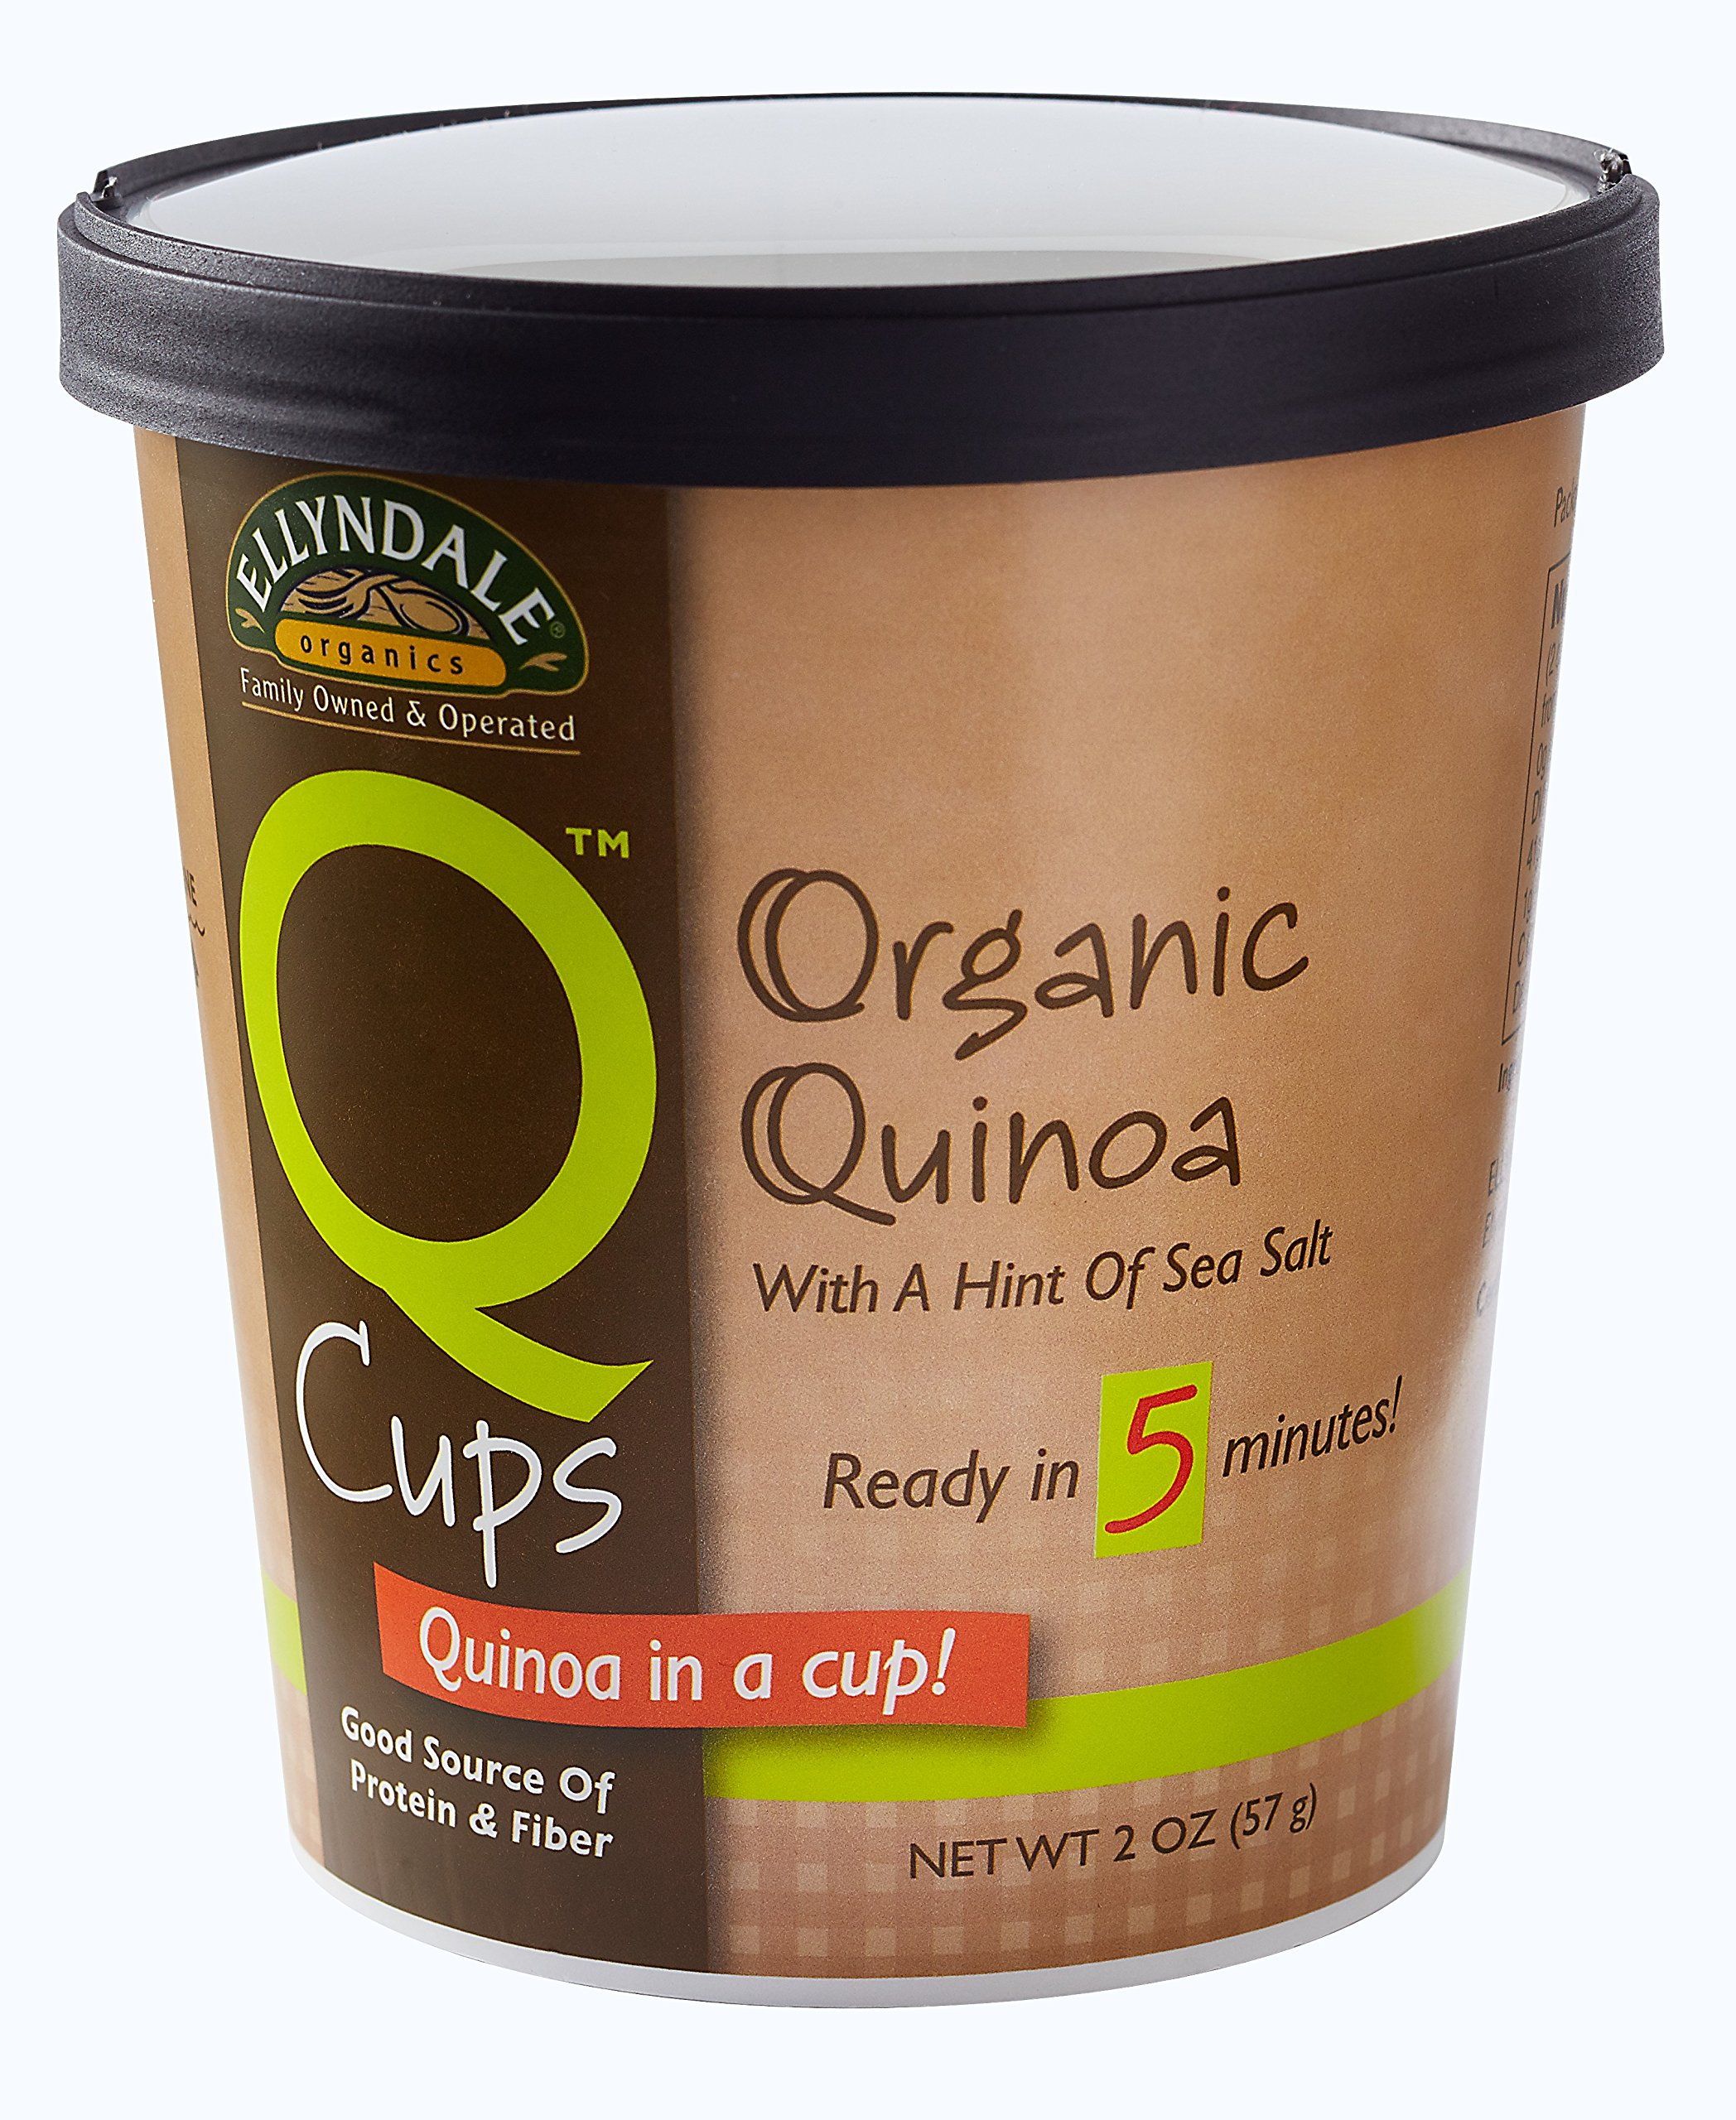 NOW Foods Ellyndale Q Cups Organic Quinoa, Sea Salt, 2-Ounce (Pack of 12)